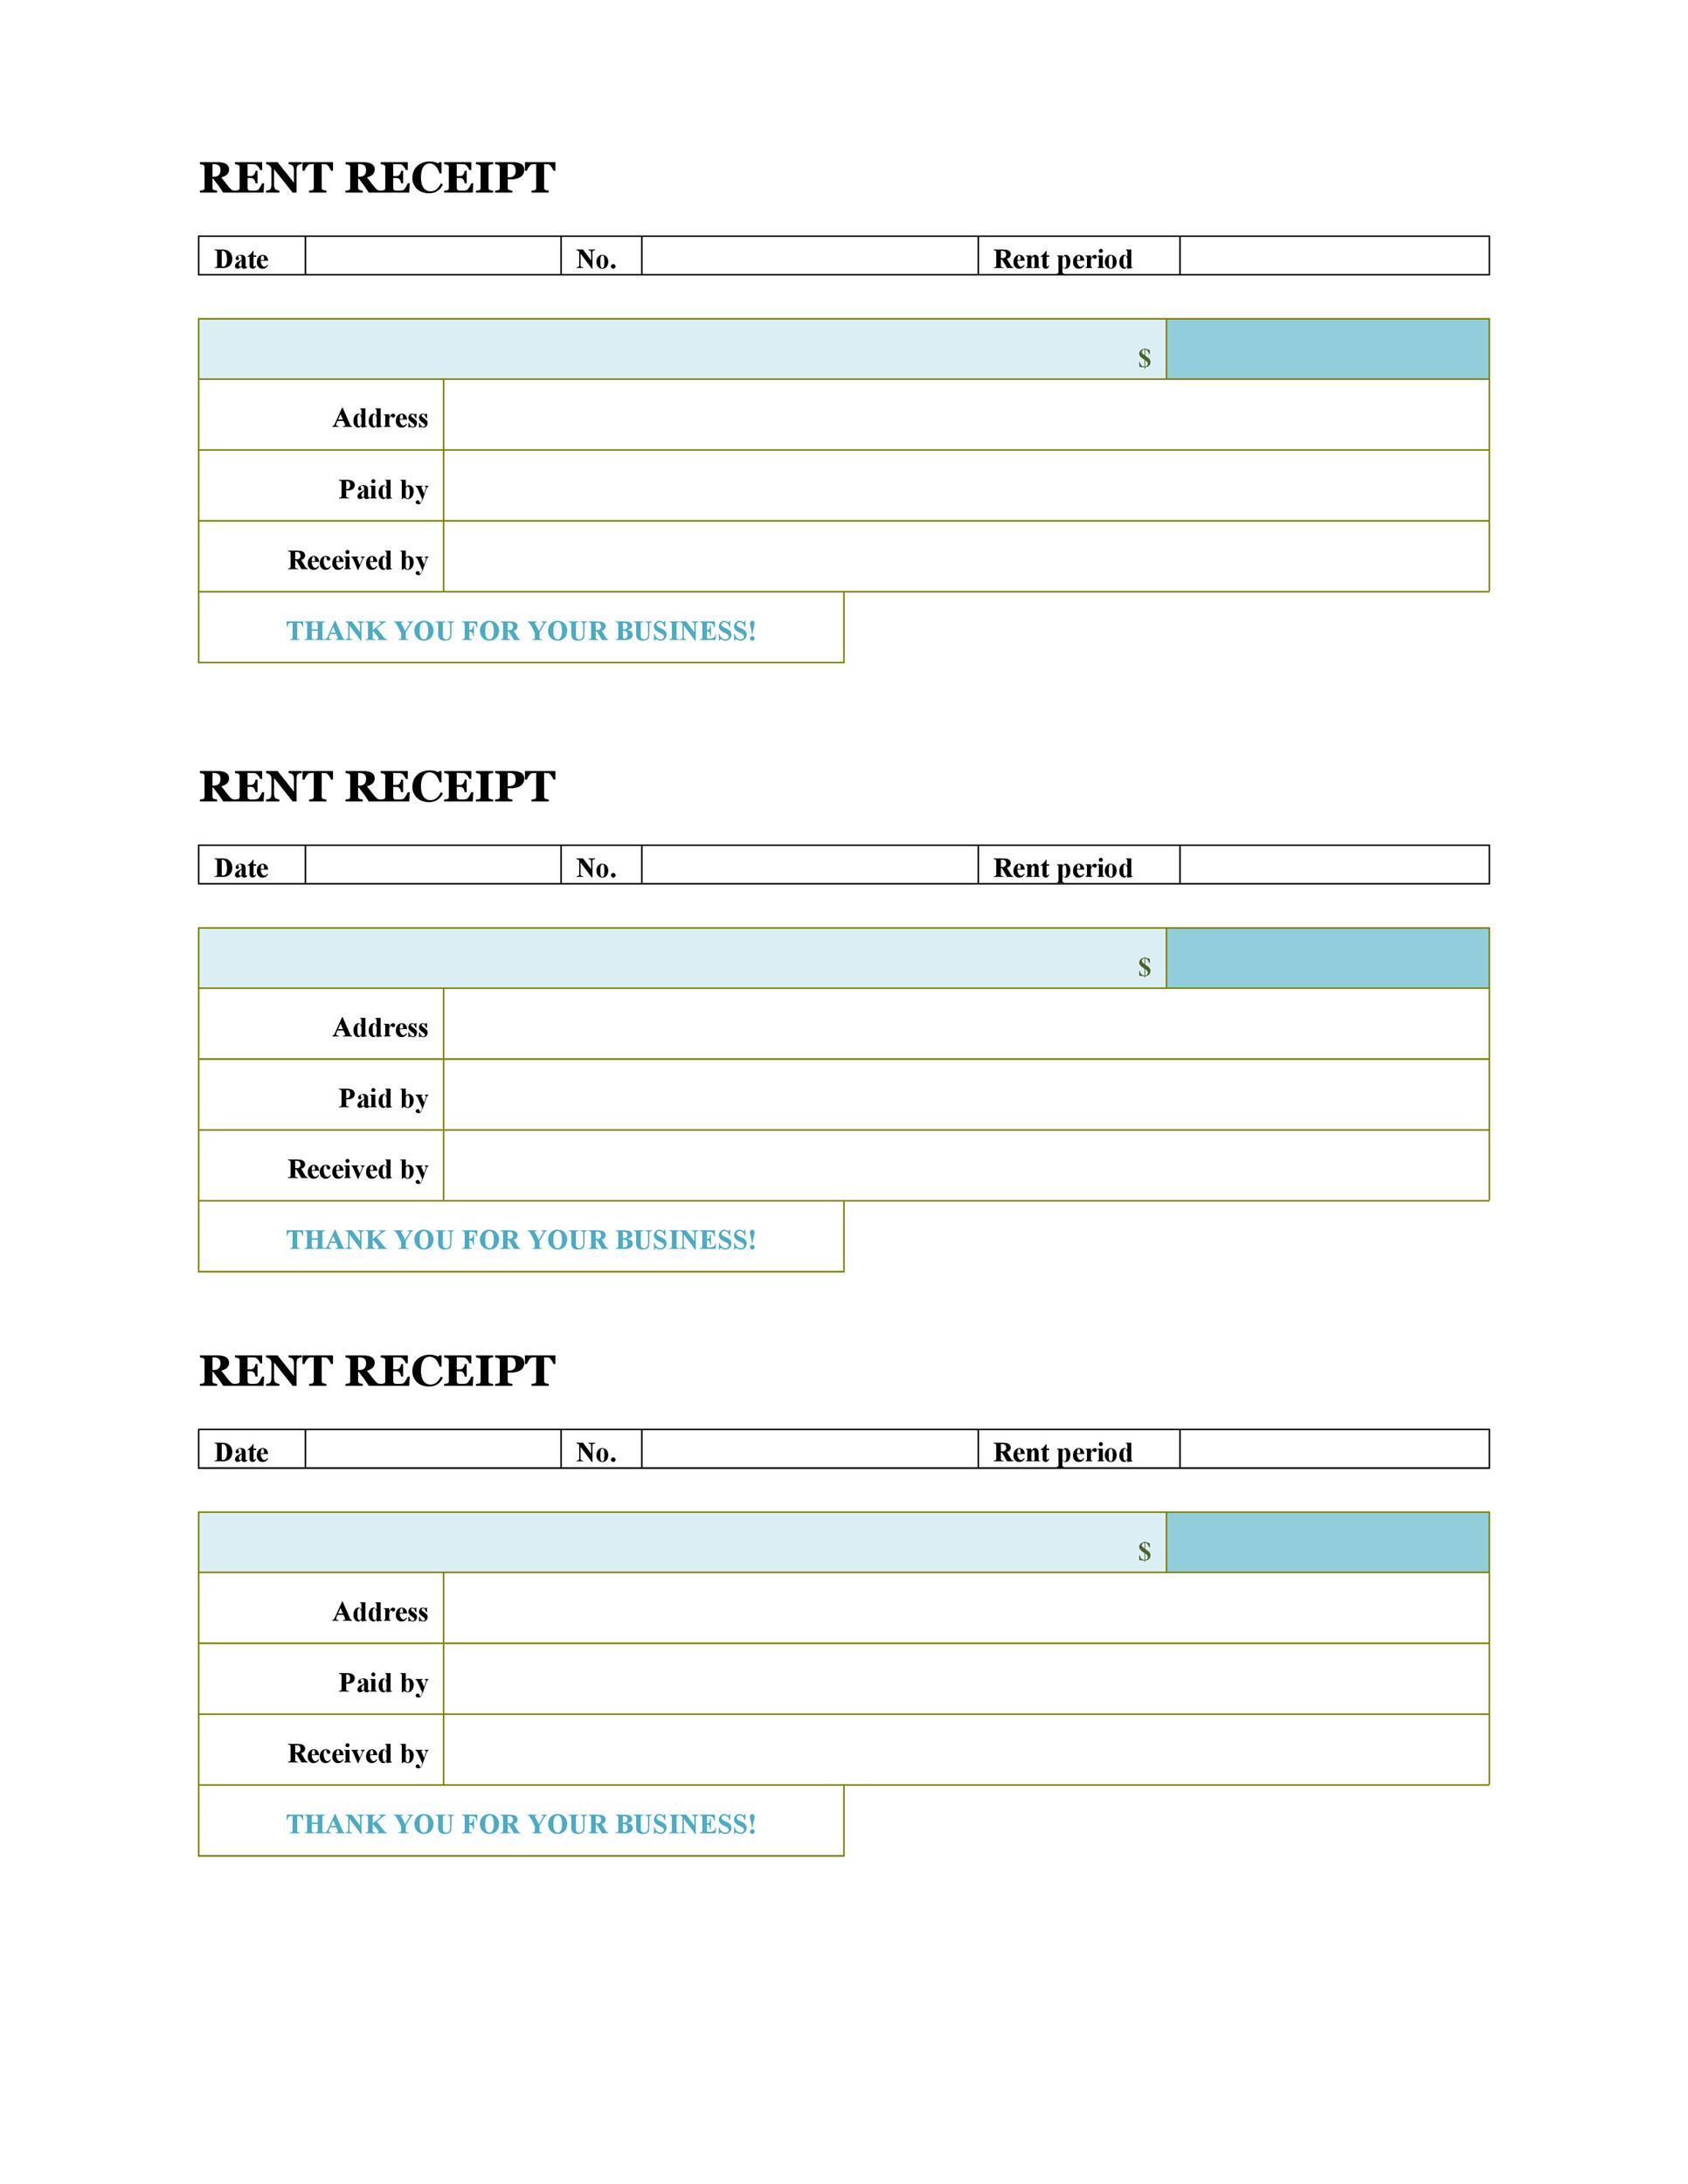 50 Free Receipt Templates Cash Sales Donation Taxi – Receipt for Rent